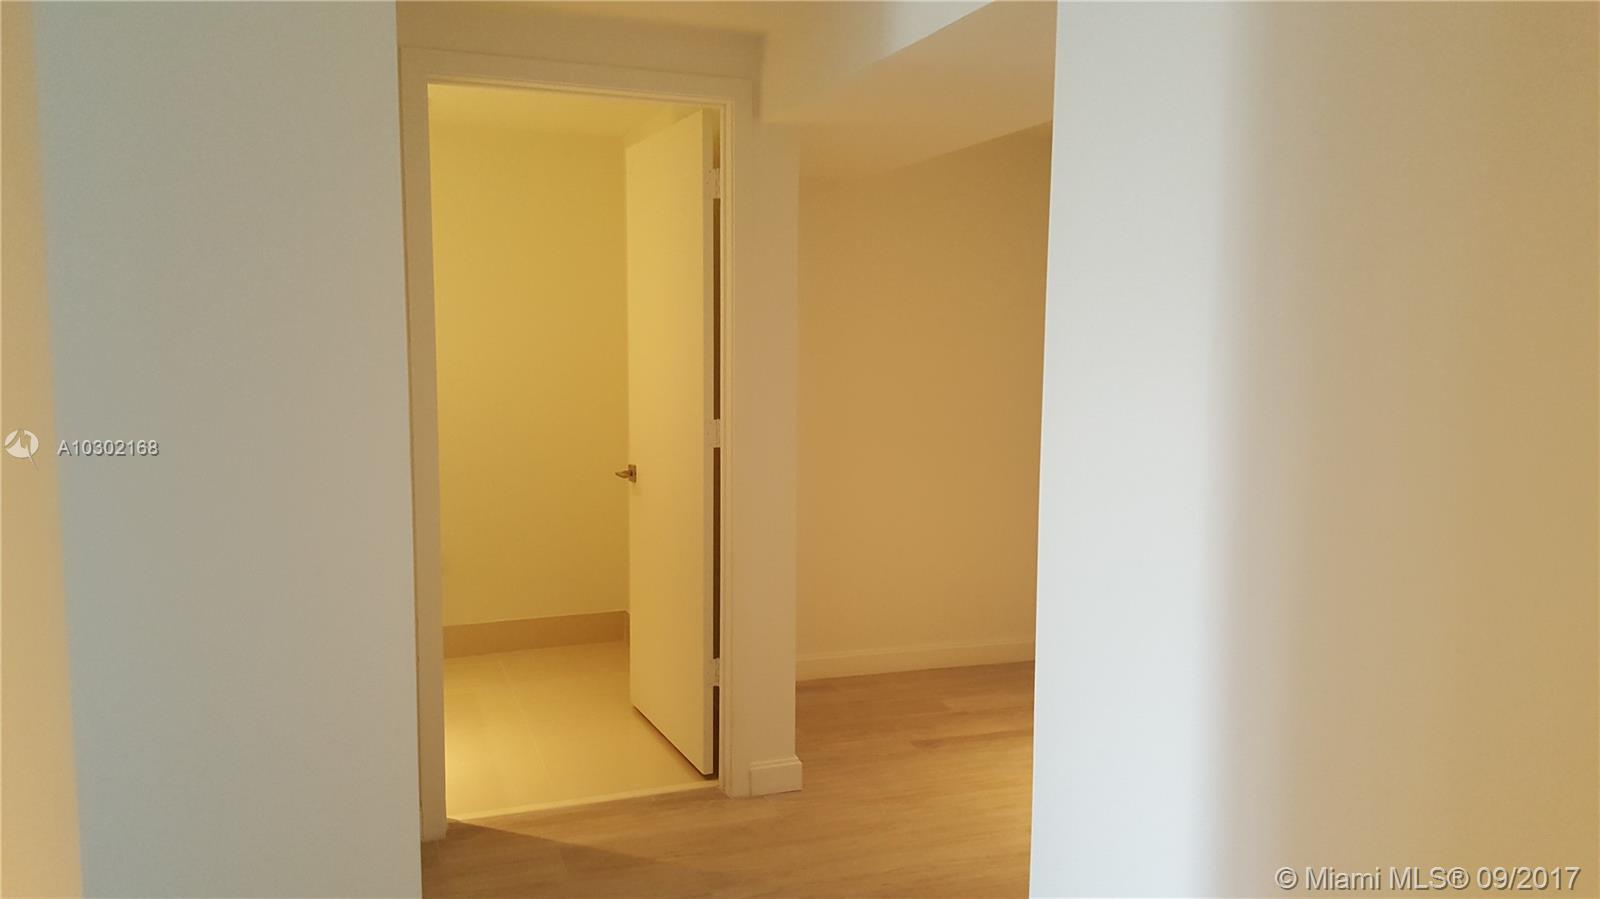 45 SW 9th St, Miami, FL 33130, Brickell Heights East Tower #1110, Brickell, Miami A10302168 image #5